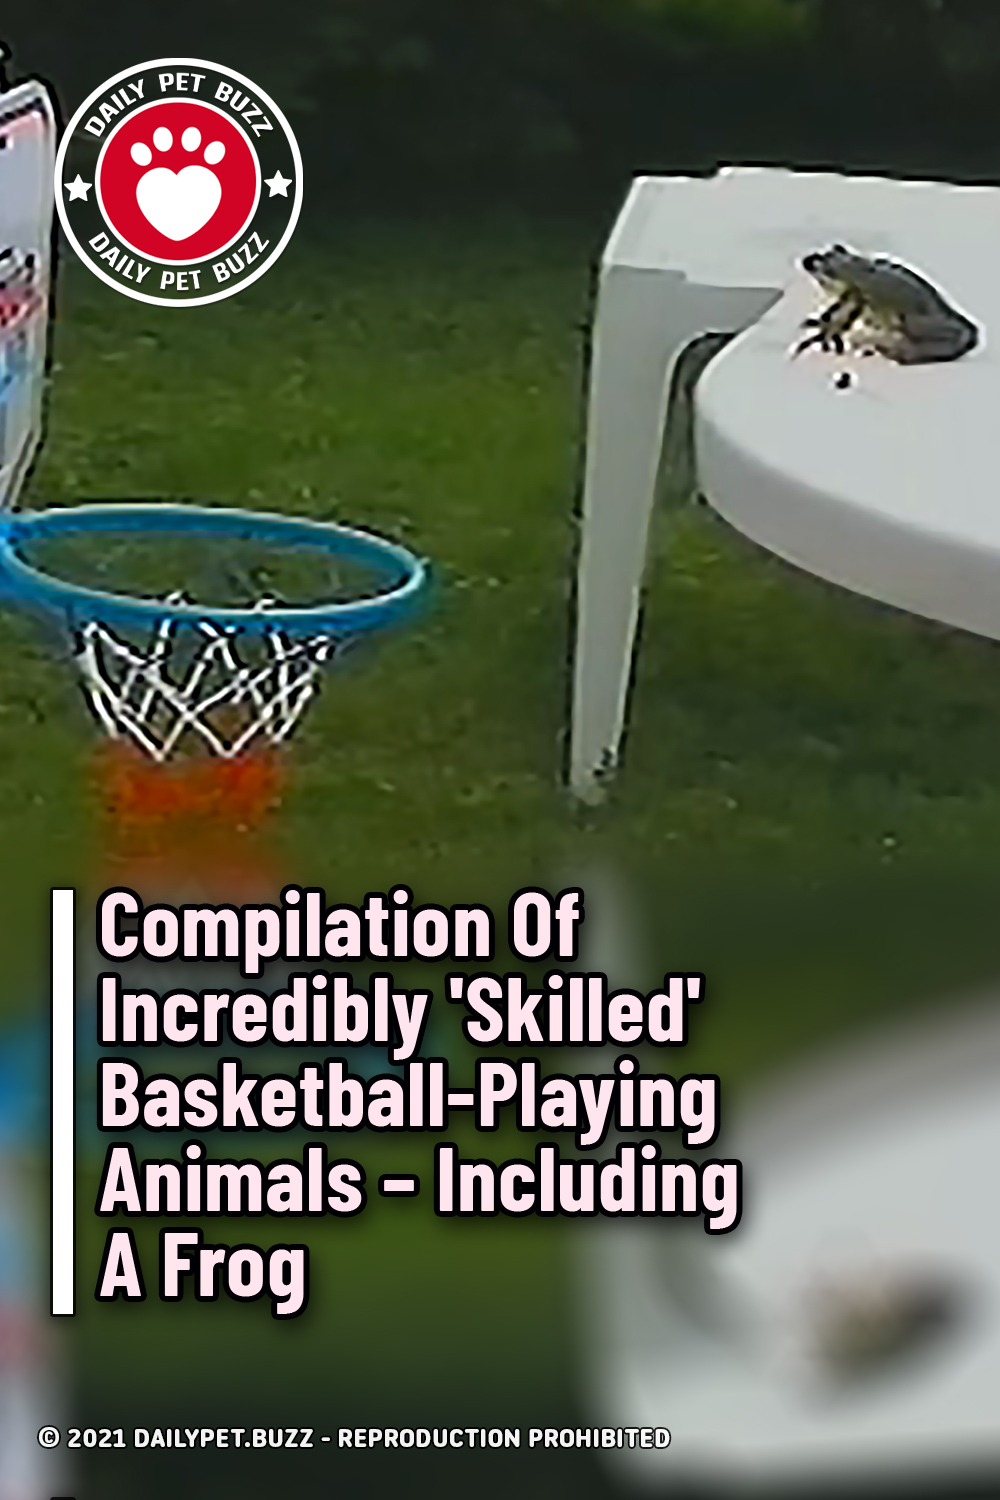 Compilation Of Incredibly \'Skilled\' Basketball-Playing Animals – Including A Frog